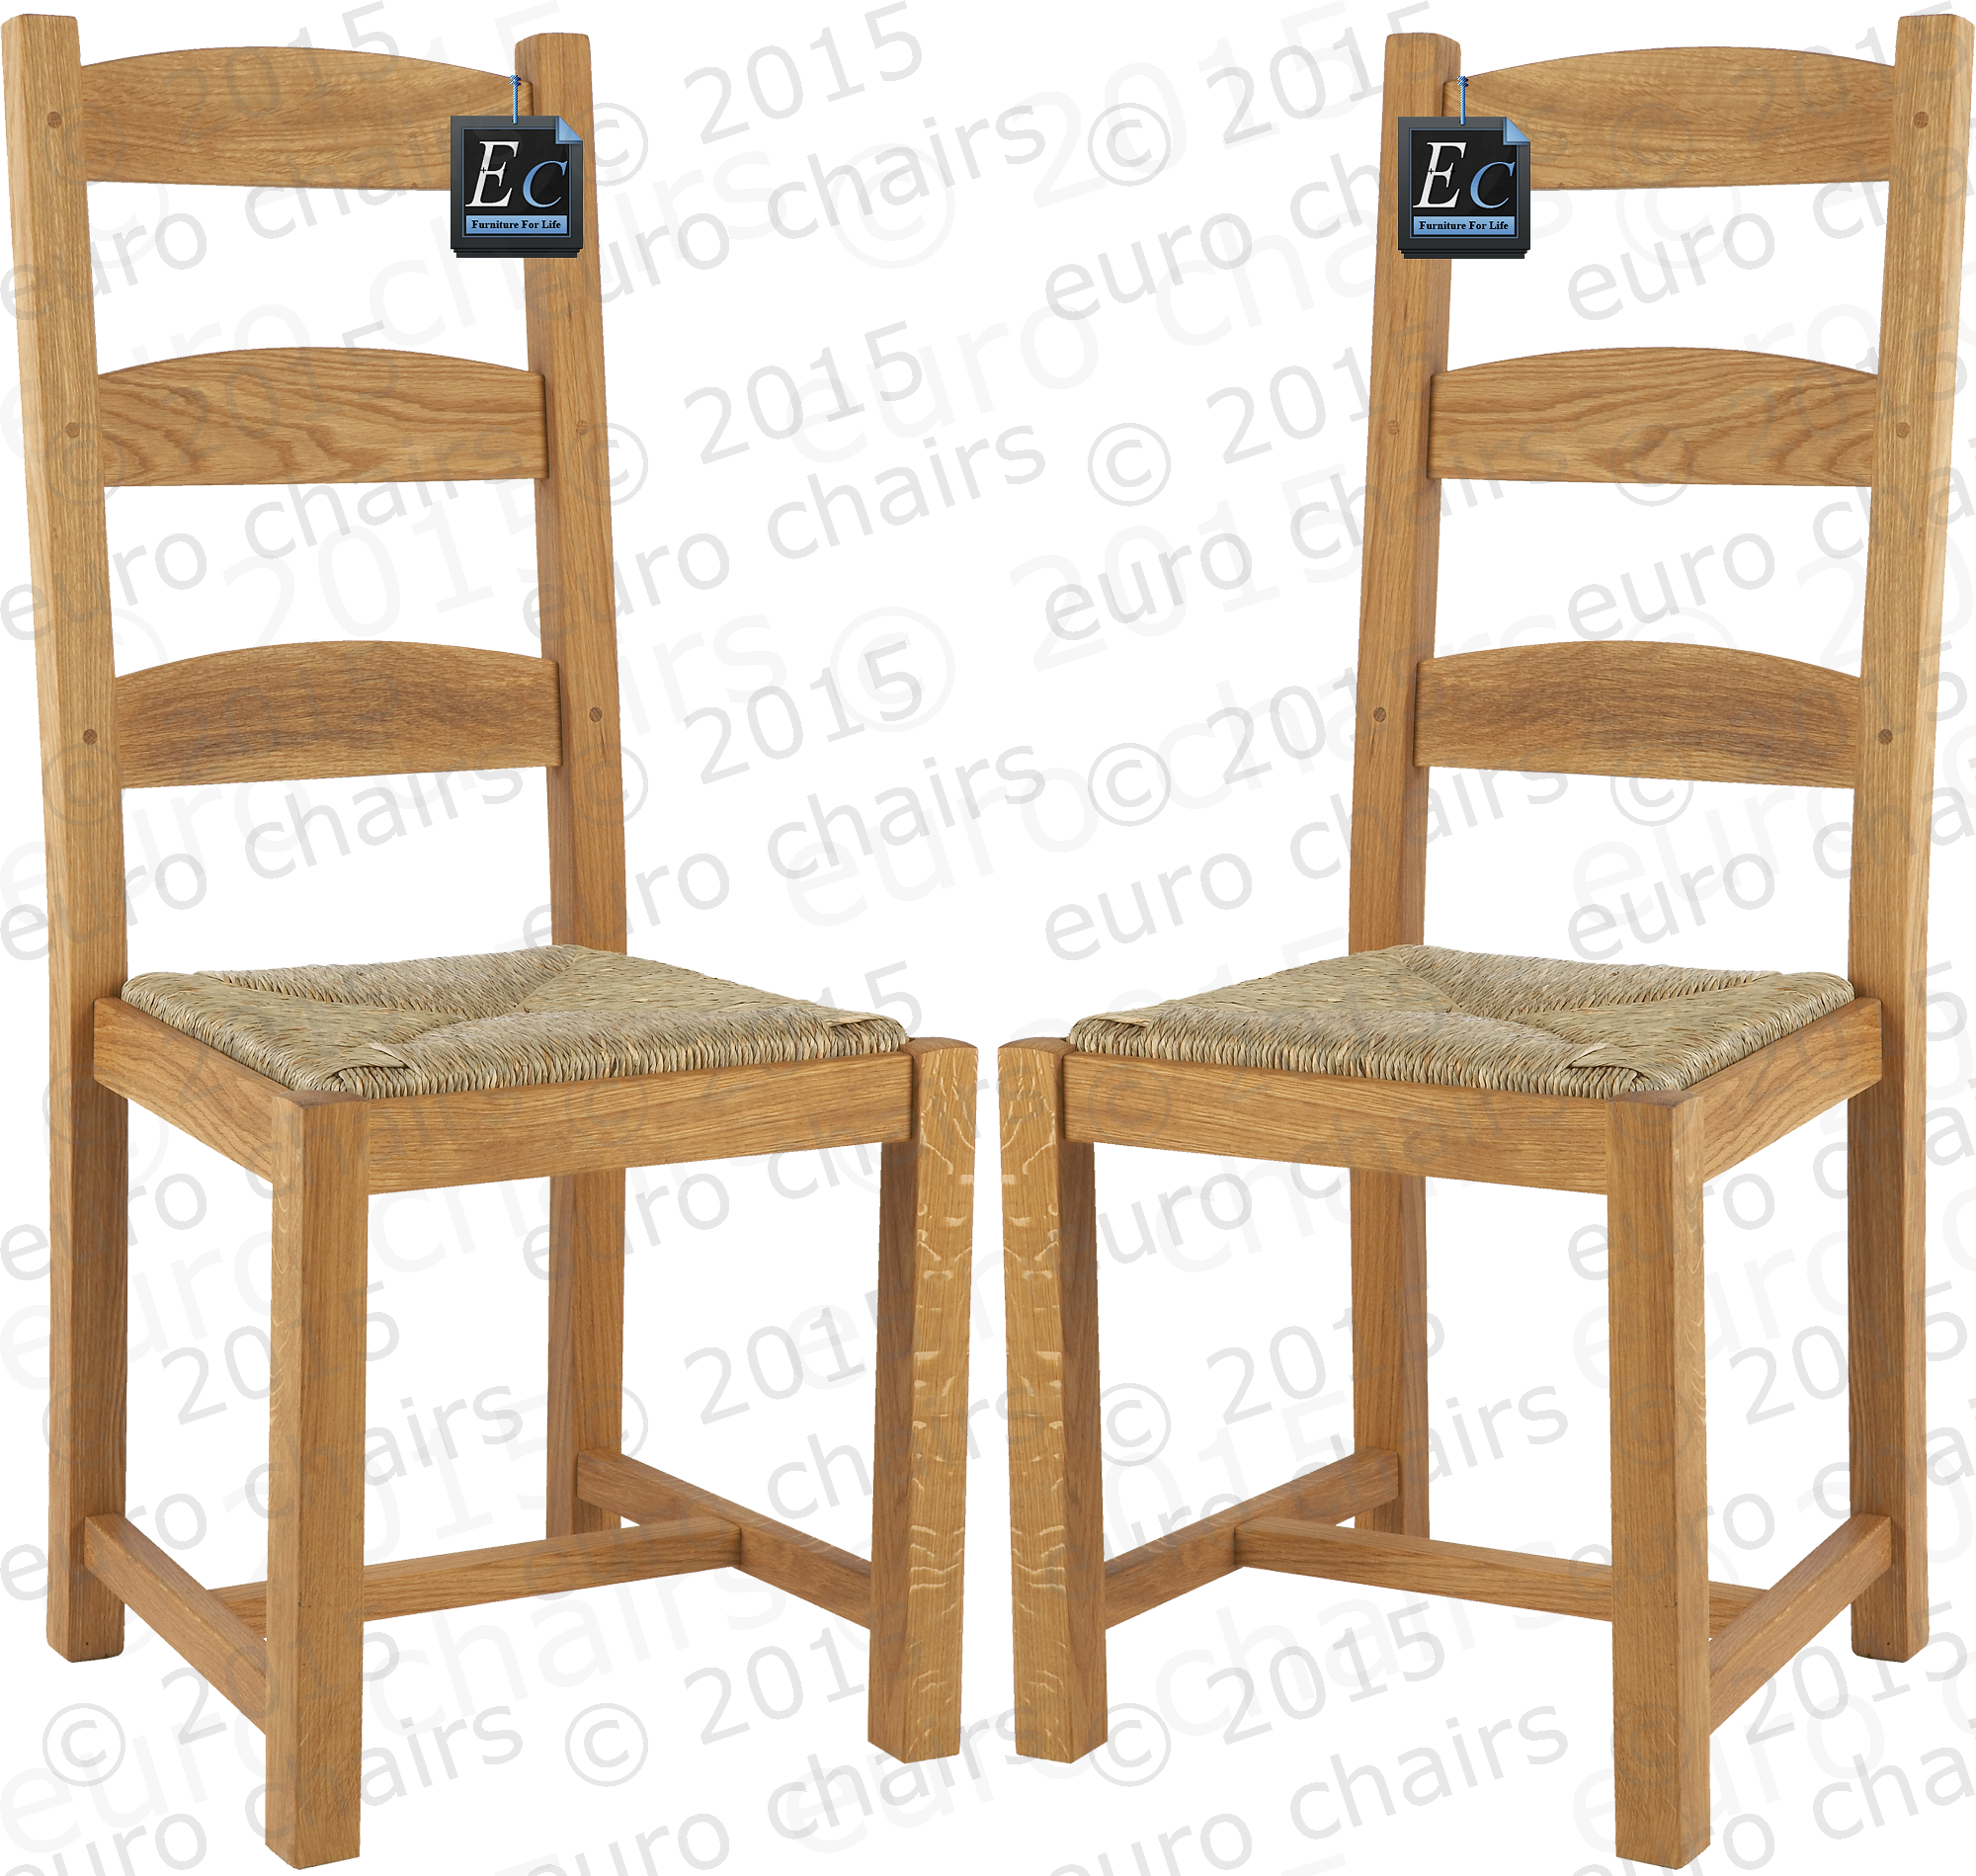 FRENCH COUNTRY LADDERBACK CHAIR: Classic French Country Chair Made In Solid  Oak : Size (cm ) 105h X 45w X 50d: Rush Seat : Traditional French Oak  Design: ...